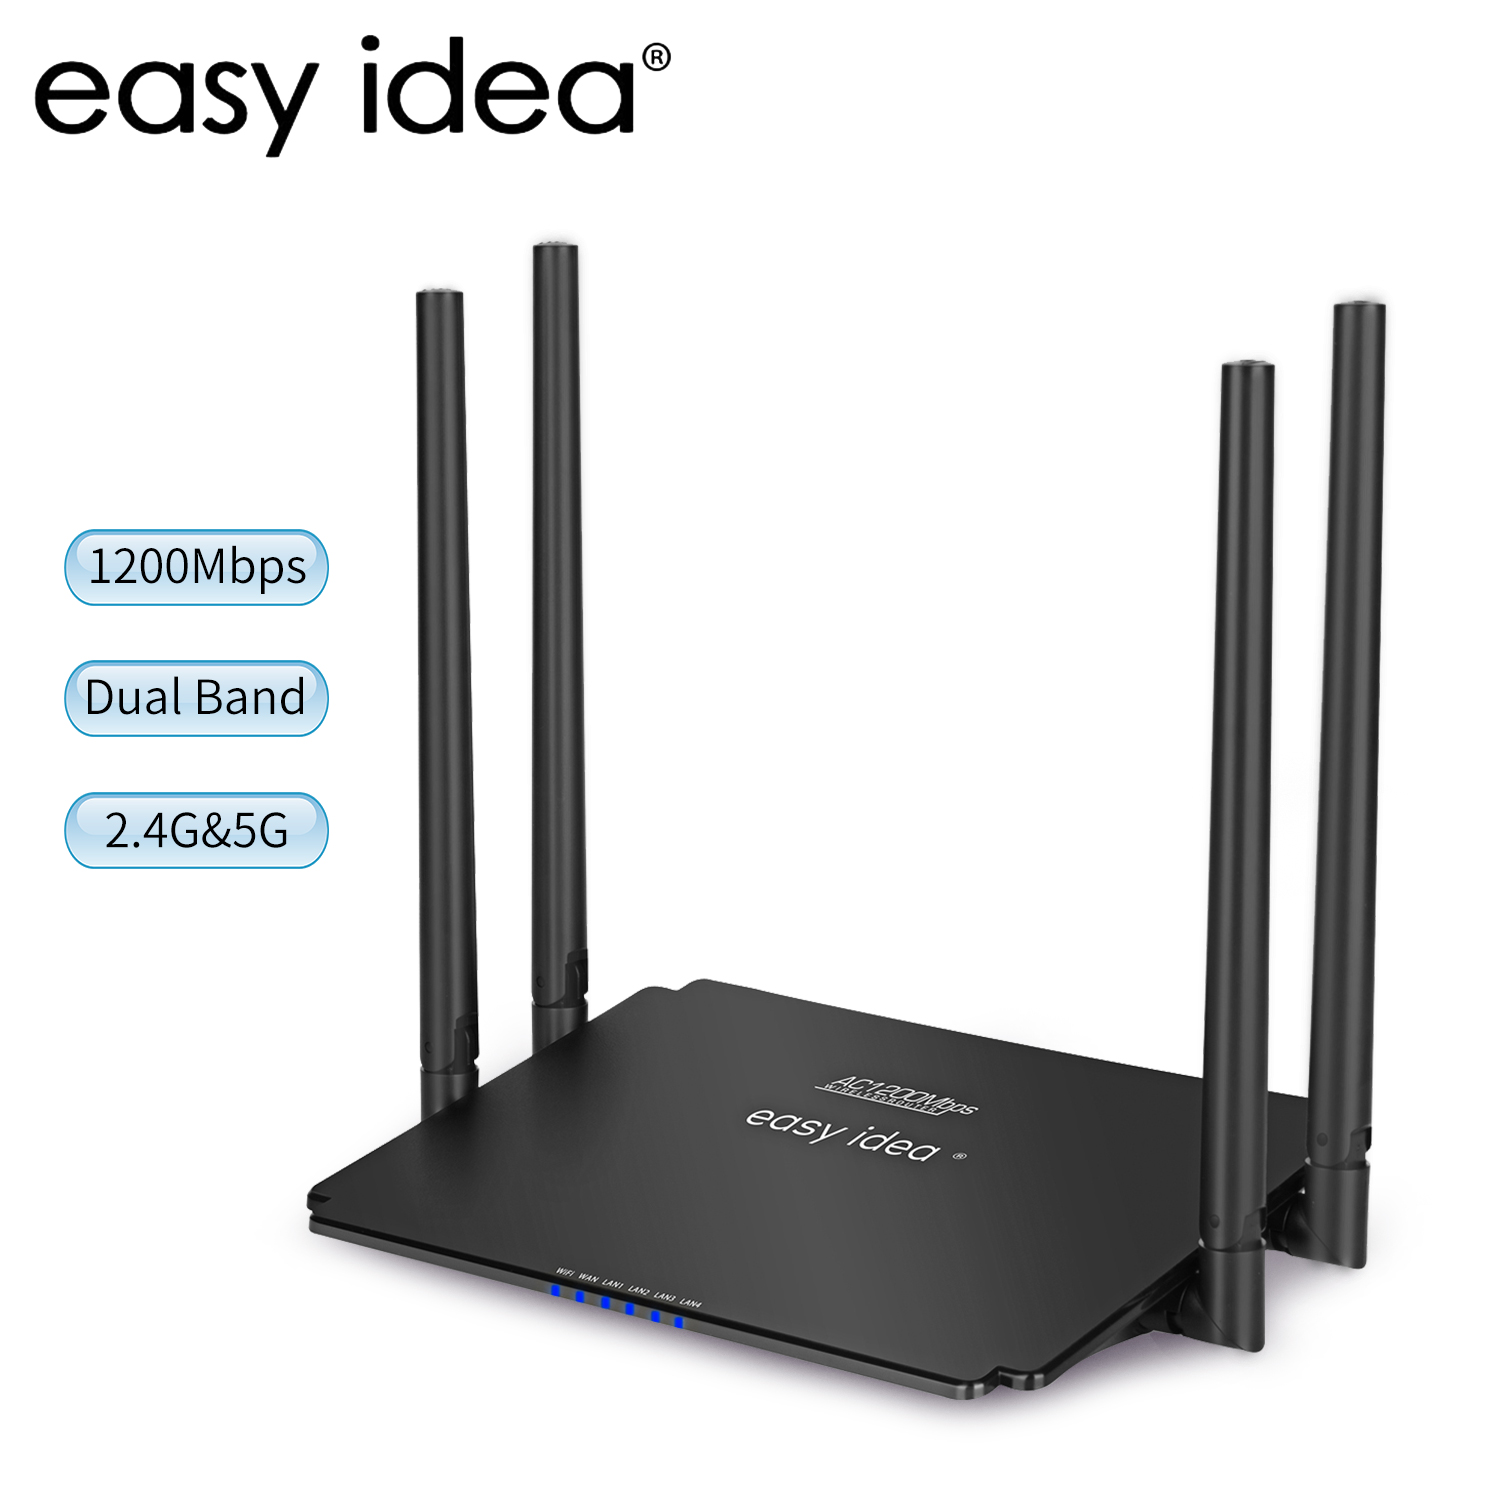 WiFi Router Amplifier WiFi Extender 1200Mbps Router Wi-Fi Access Point Dual Band 2.4G/5Ghz Smart APP Control Wi Fi Router